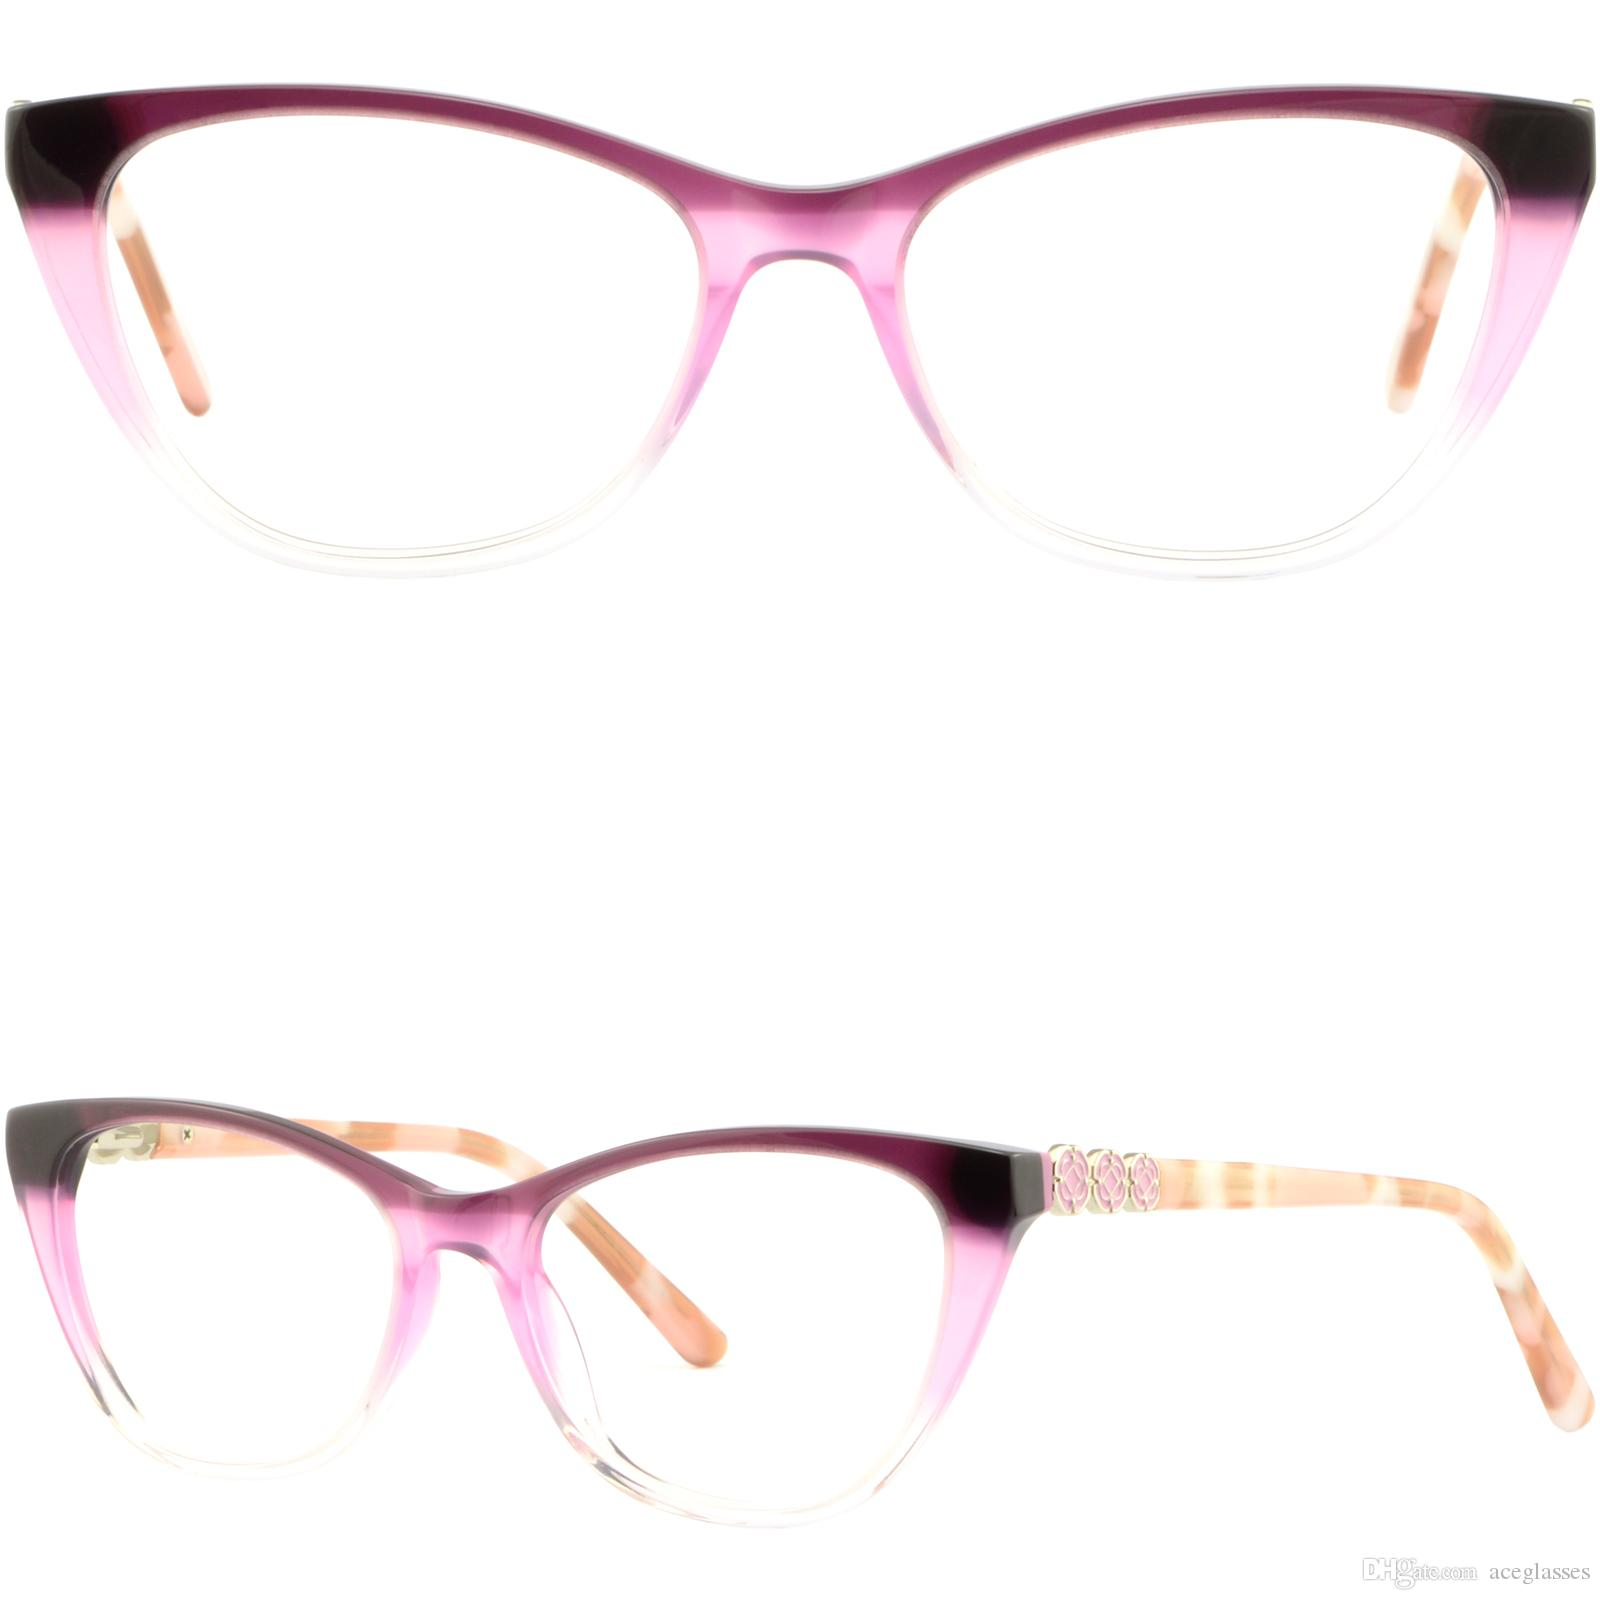 0b13fb4238 Light Cateye Women Acetate Frame Plastic Prescription Glasses Pink Spring  Hinges Pink Eyeglasses Frames Red Eyeglasses Frames From Aceglasses